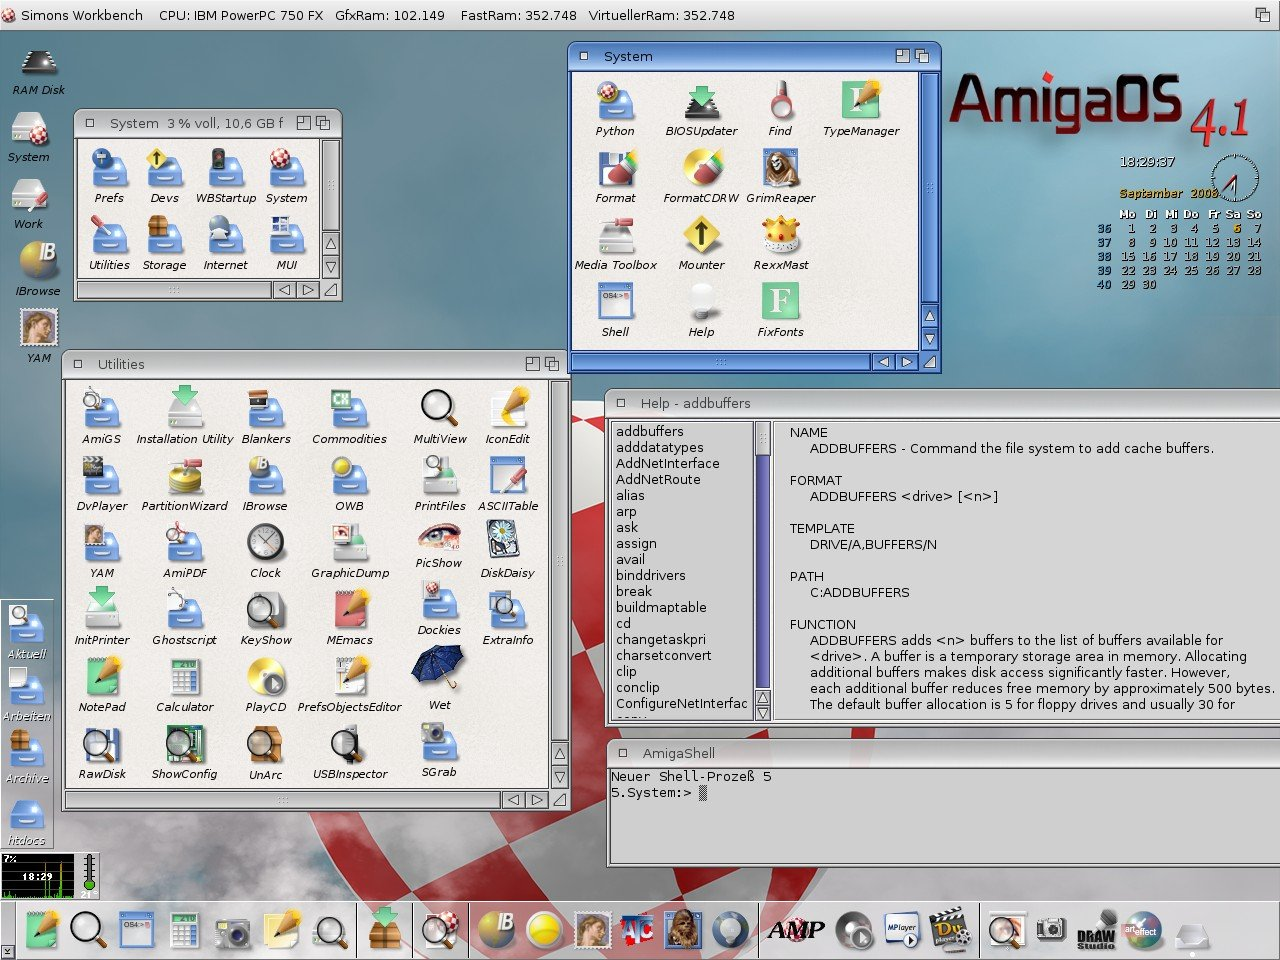 My first AmigaOS 4.1 screenshot